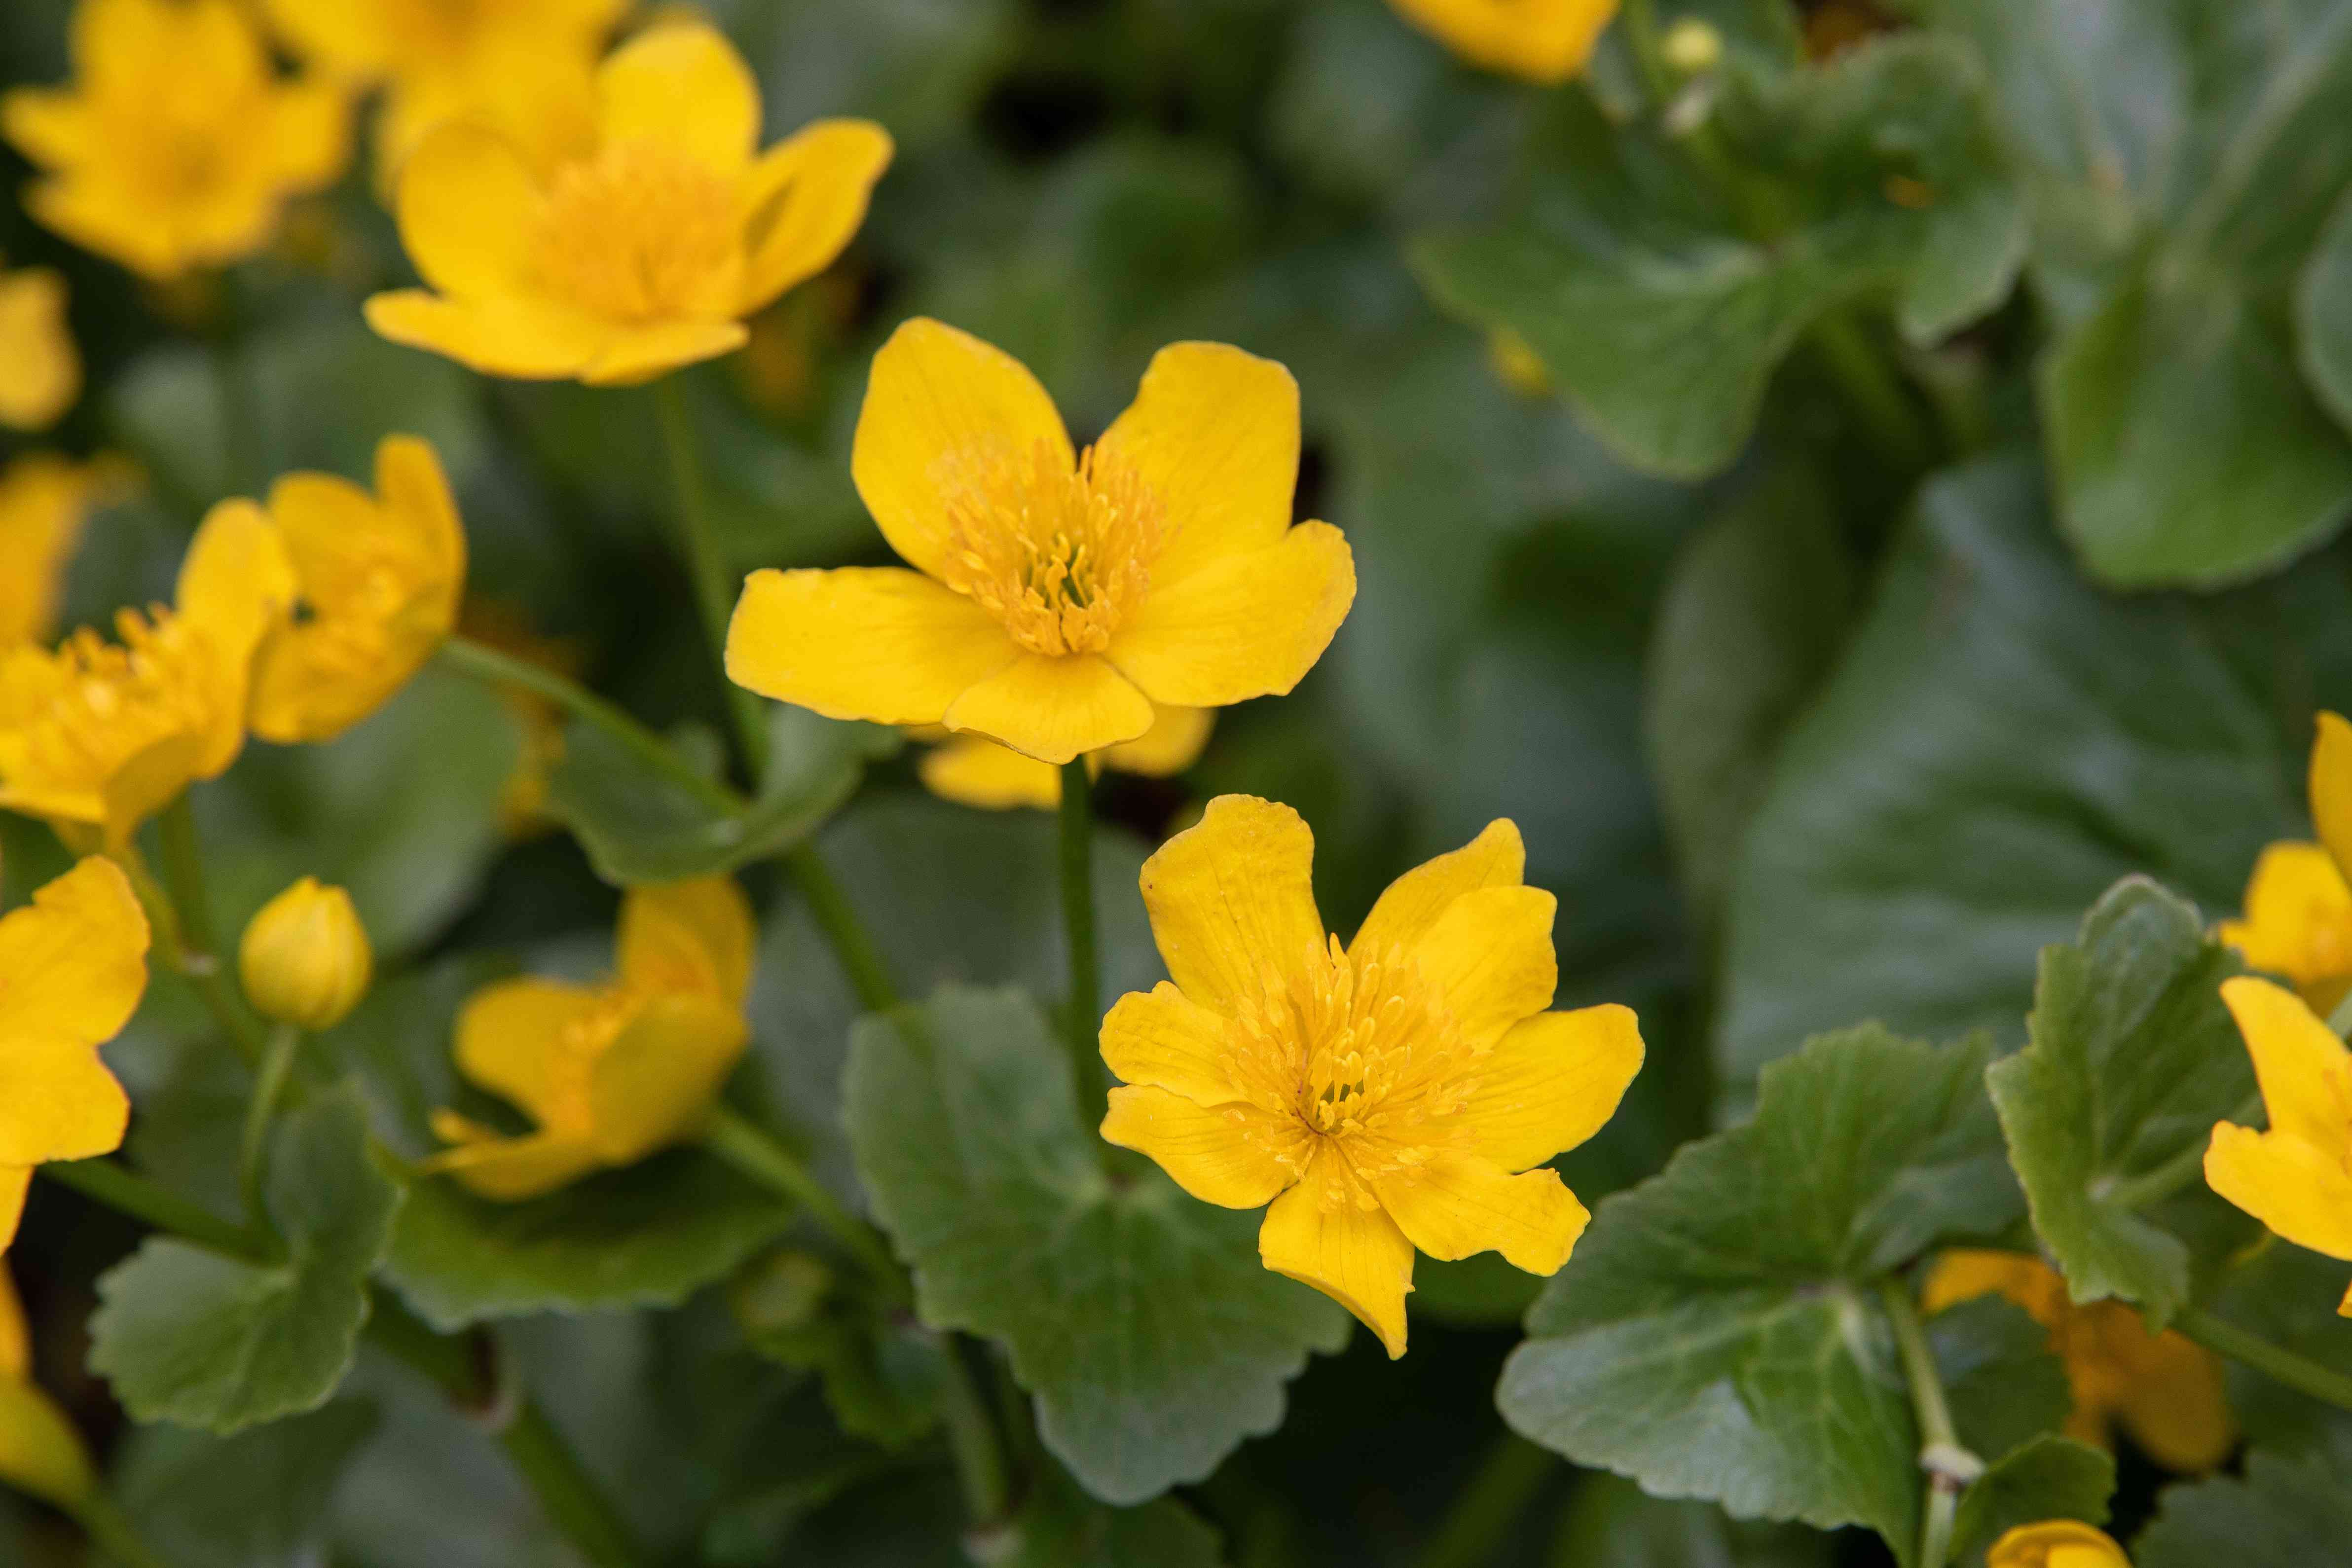 Marsh marigold with yellow sepals mixed with leaves closeup